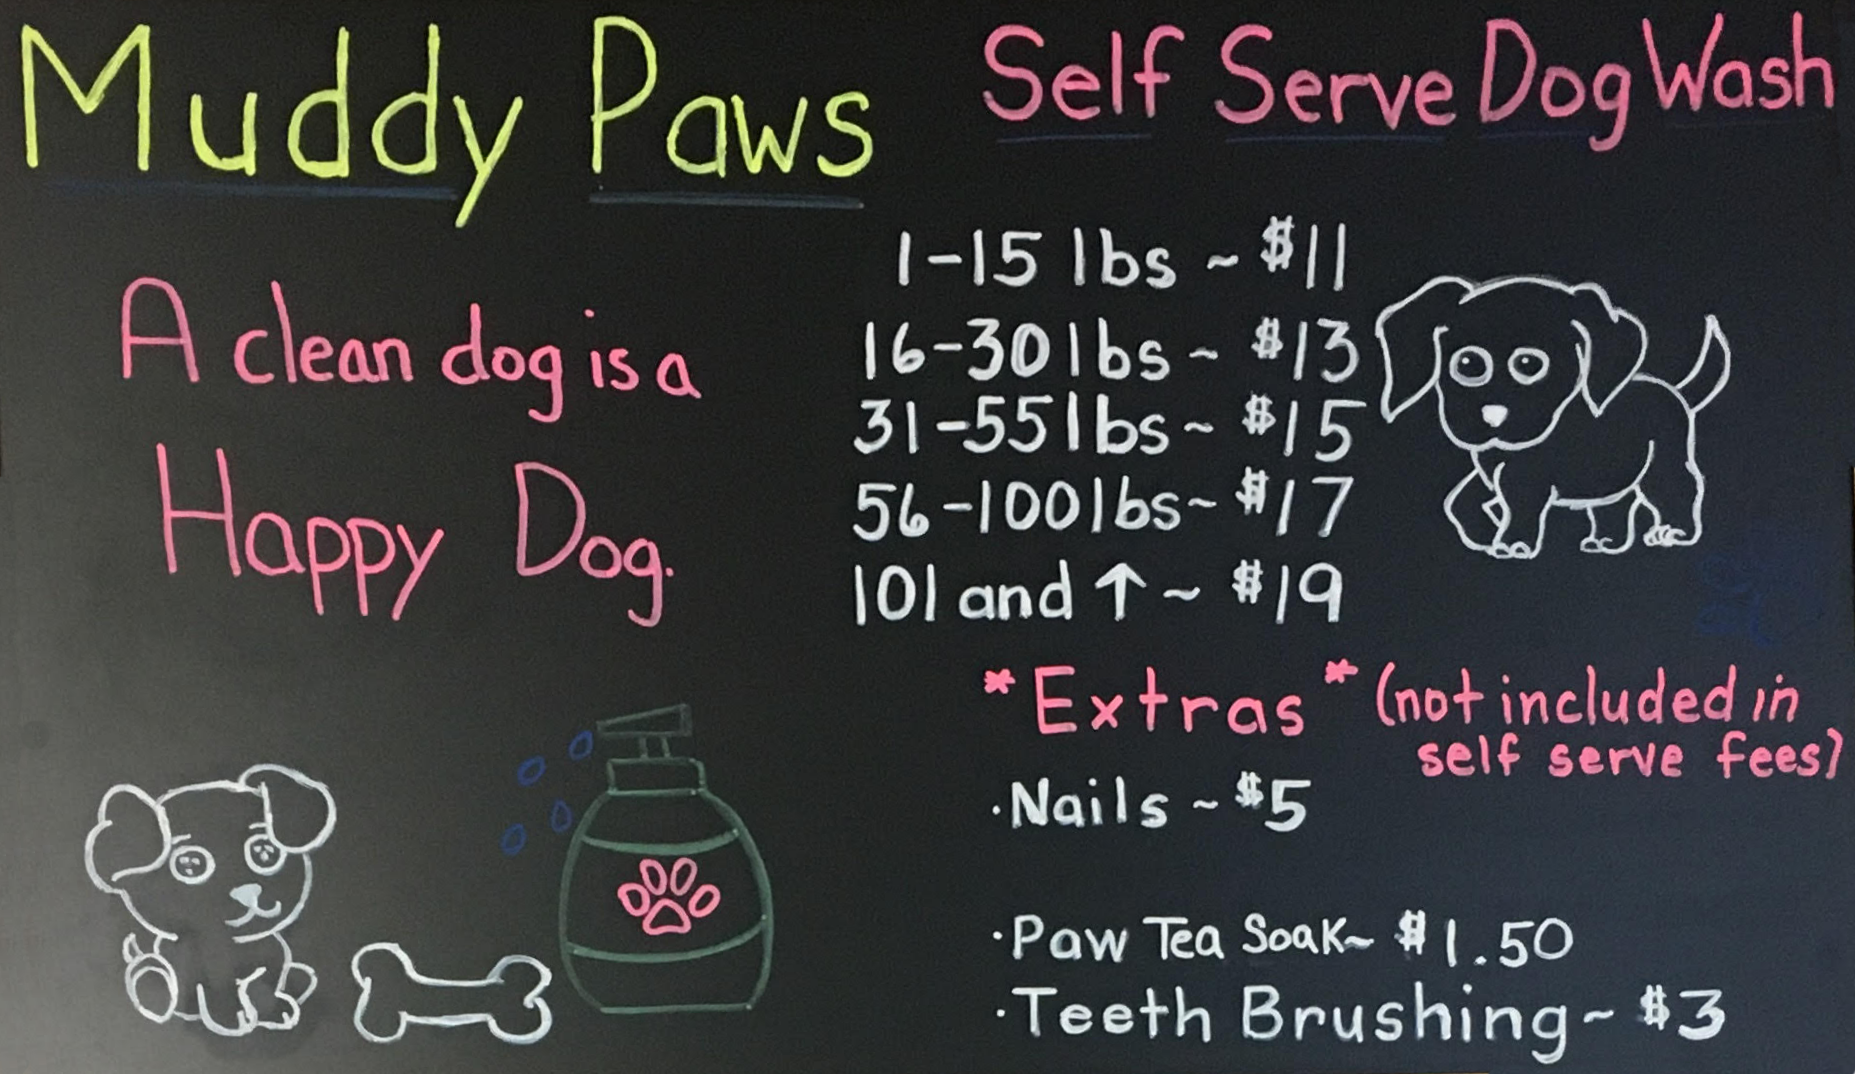 Muddy paws dog wash and grooming looking for grooming services we can take care of everything in the same visit sorry there is no option for self serve grooming solutioingenieria Image collections